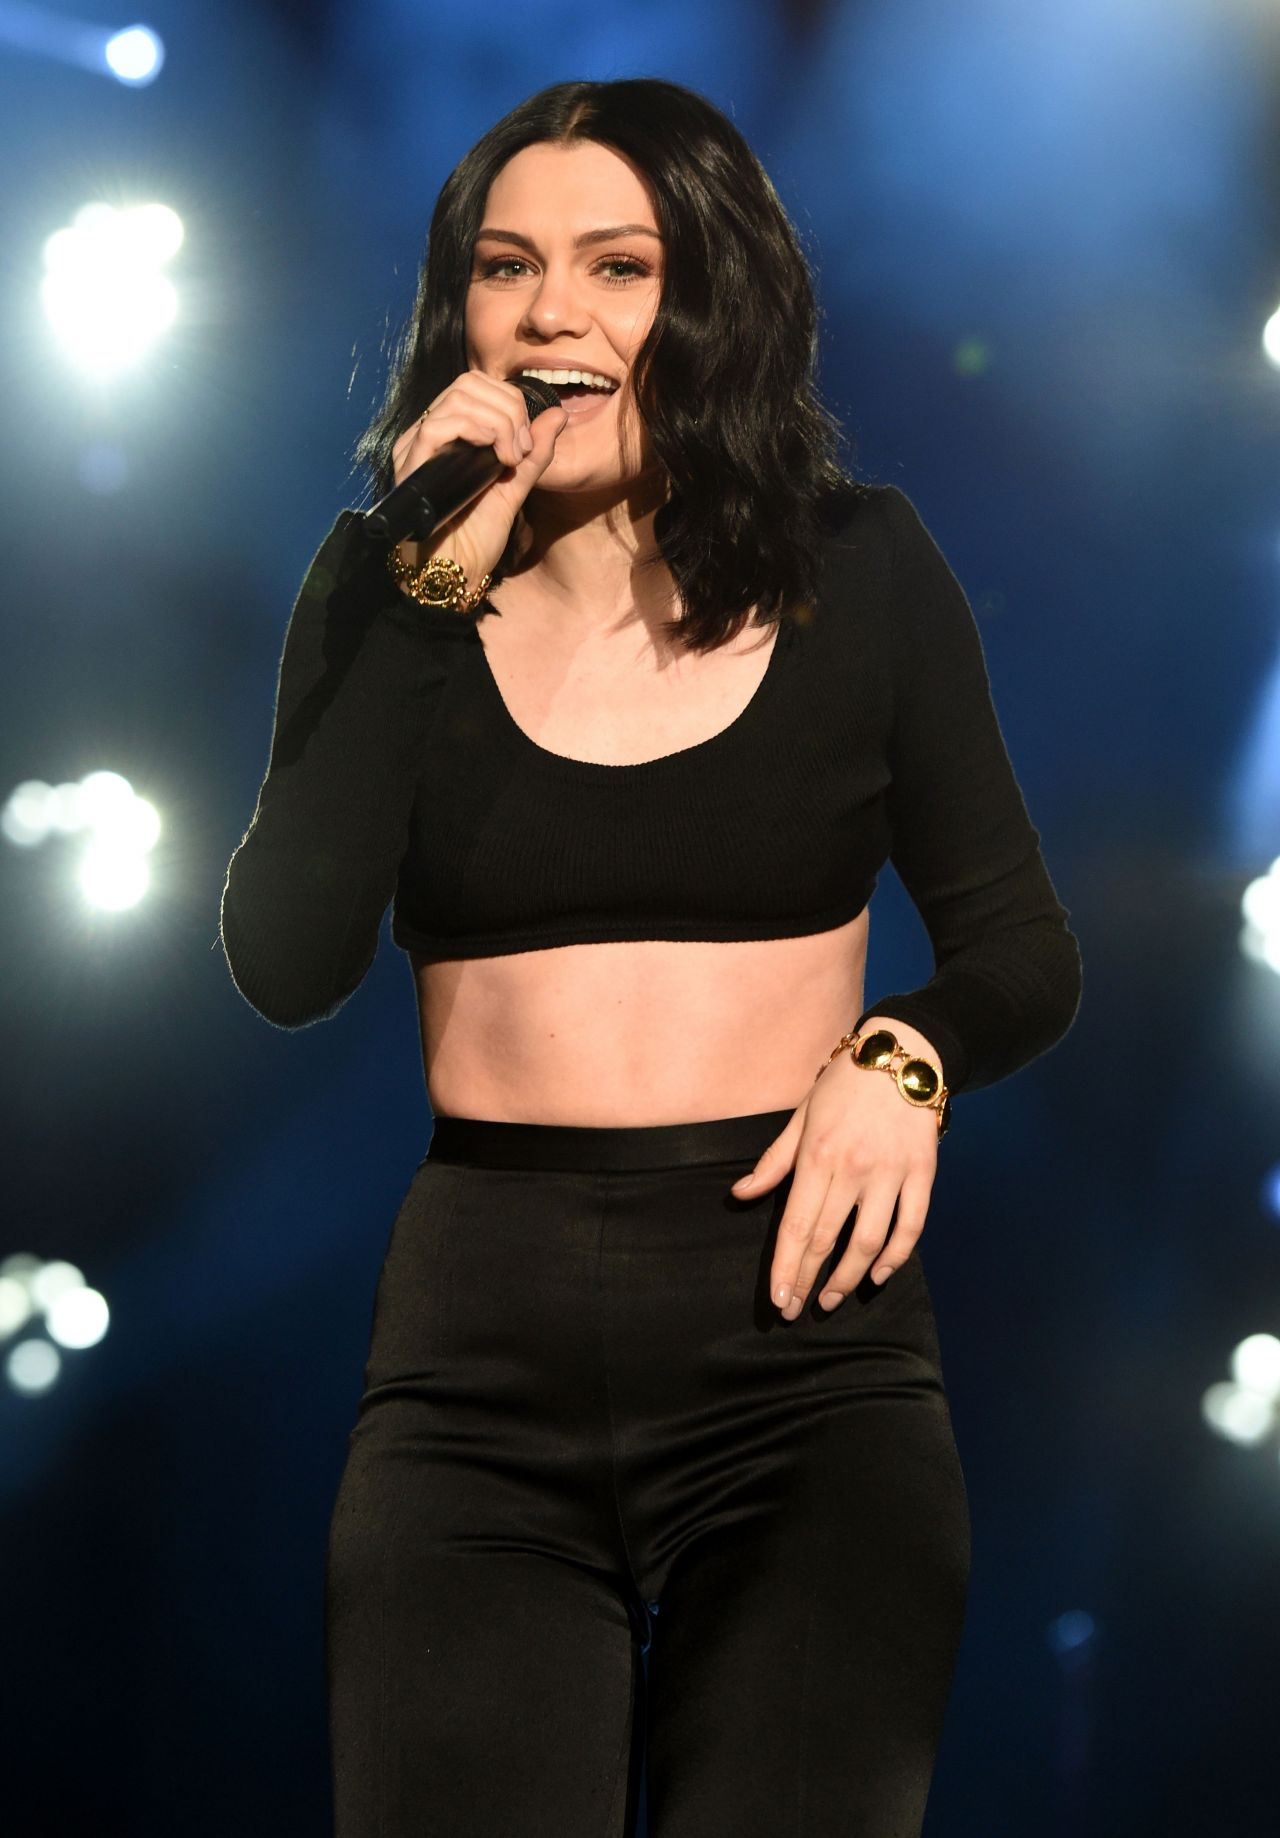 Jessie J We Day Show At Wembley Arena In London 3 22 2017